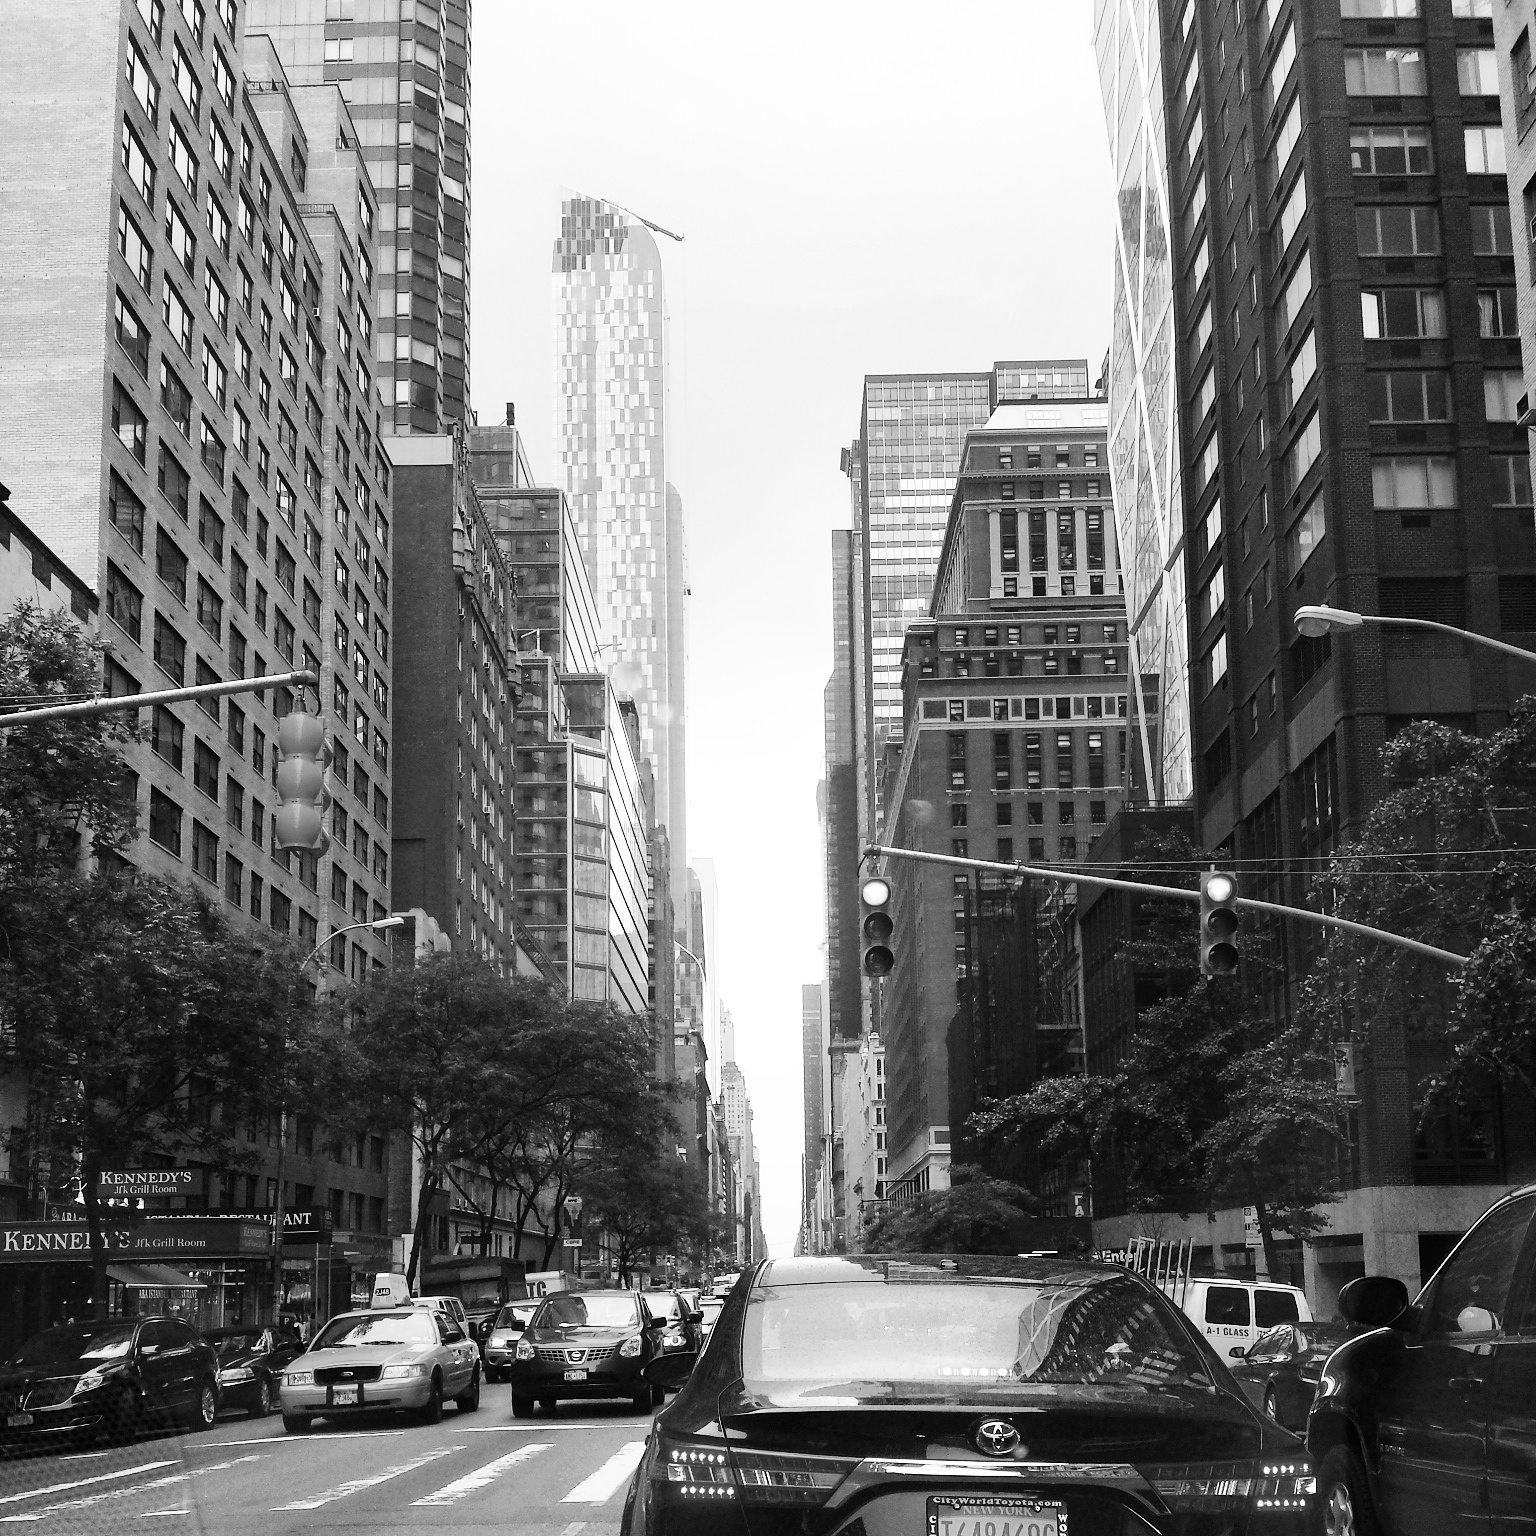 57th Street, Manhattan, NY